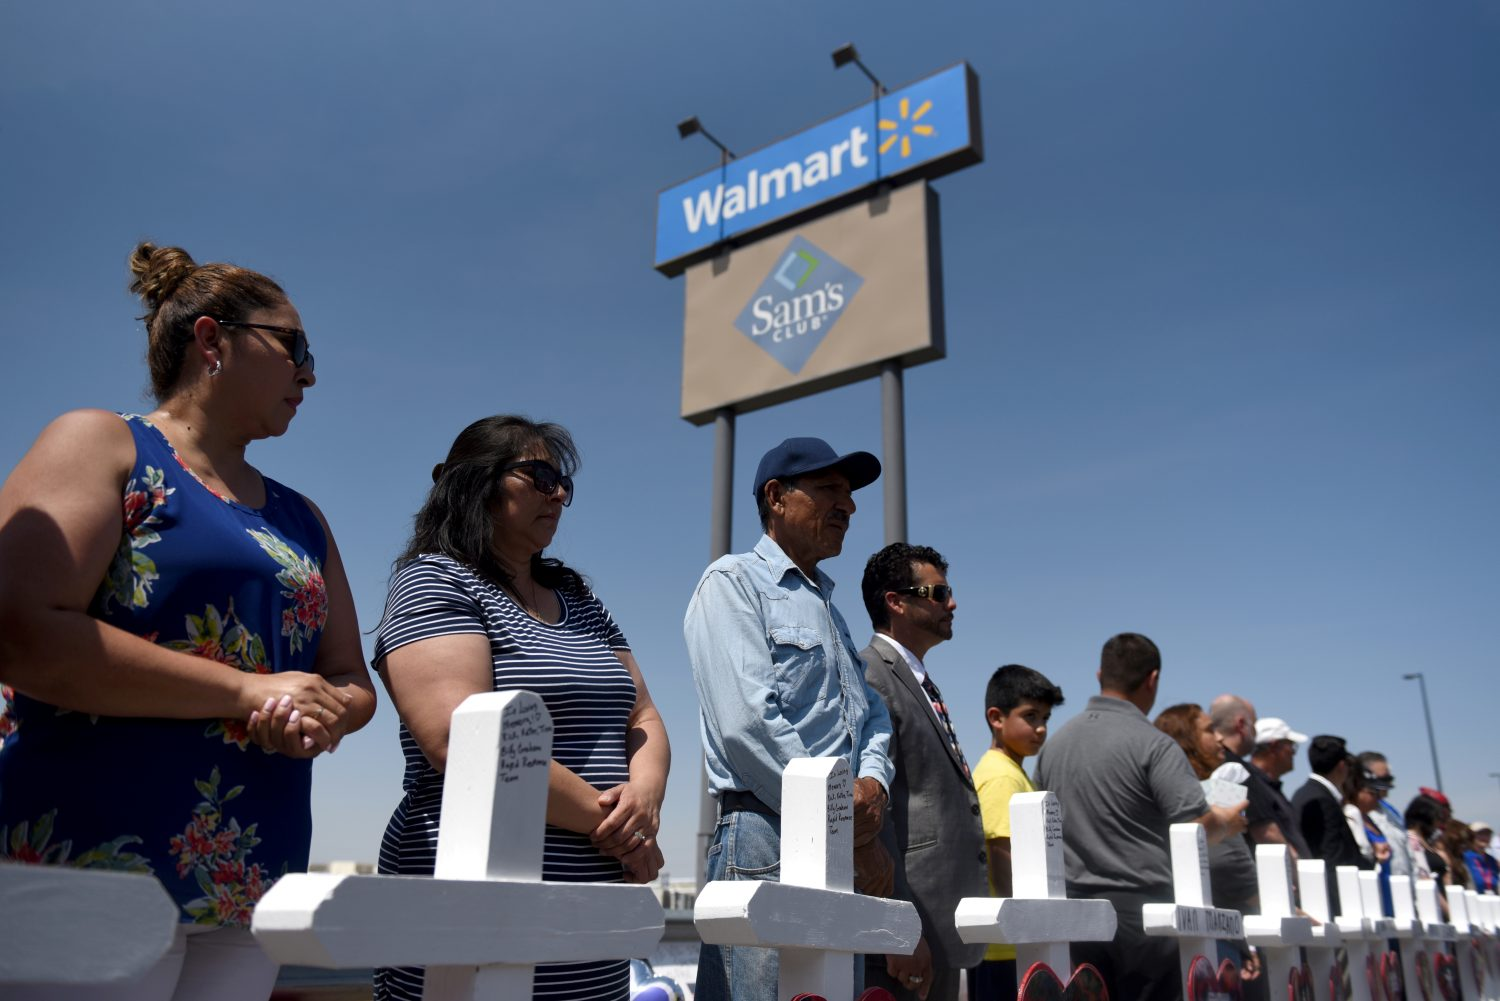 FILE PHOTO: People pray next to a row of crosses representing each of the victims at a growing memorial site two days after a mass shooting at a Walmart store in El Paso, Texas, U.S. August 5, 2019. REUTERS/Callaghan O'Hare/File Photo